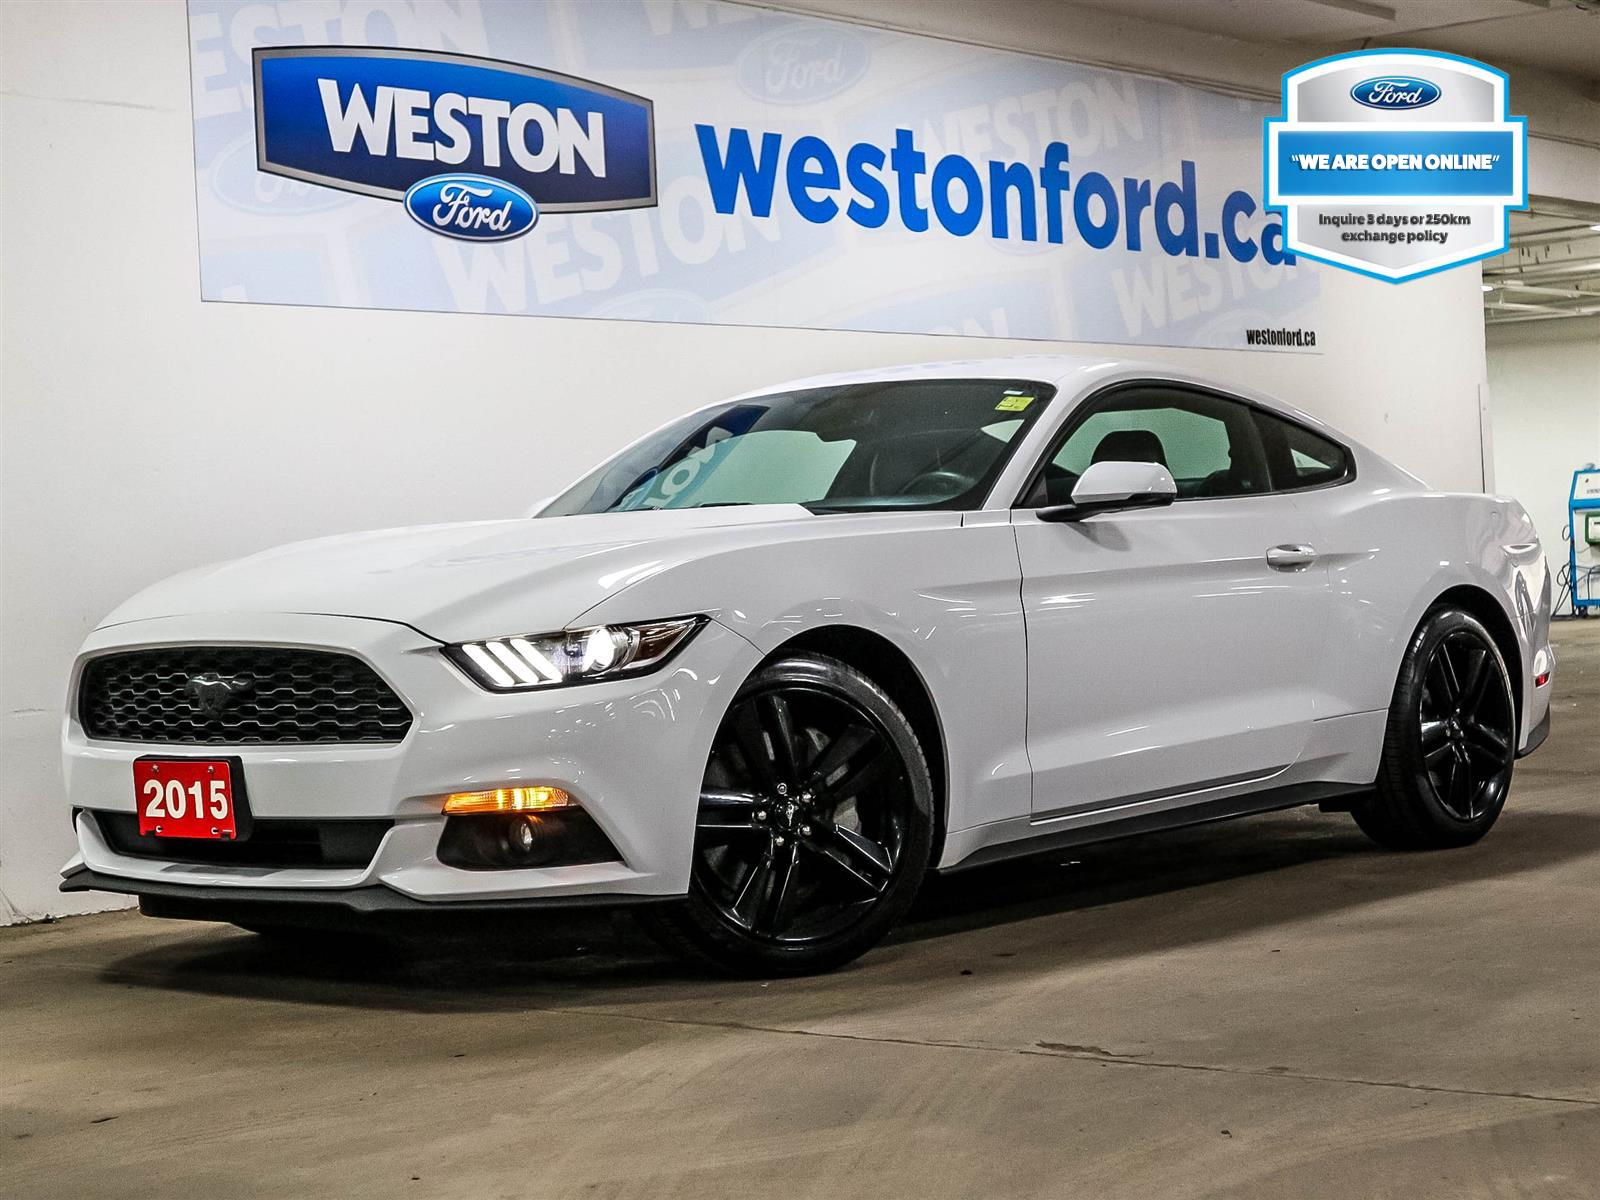 used 2015 Ford Mustang car, priced at $24,988